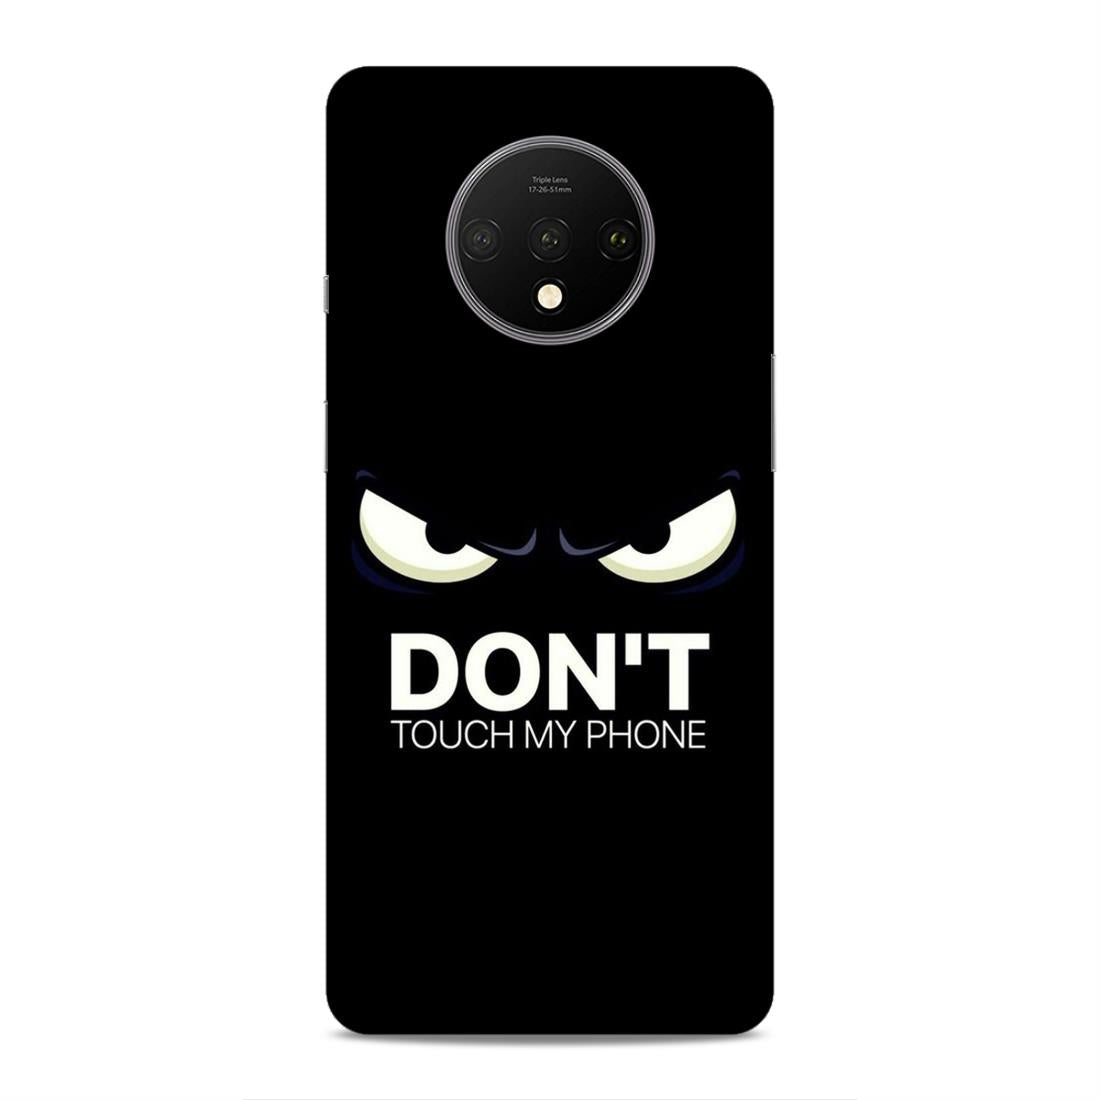 Phone Cases,Oneplus Phone Cases,Oneplus 7T,Gaming